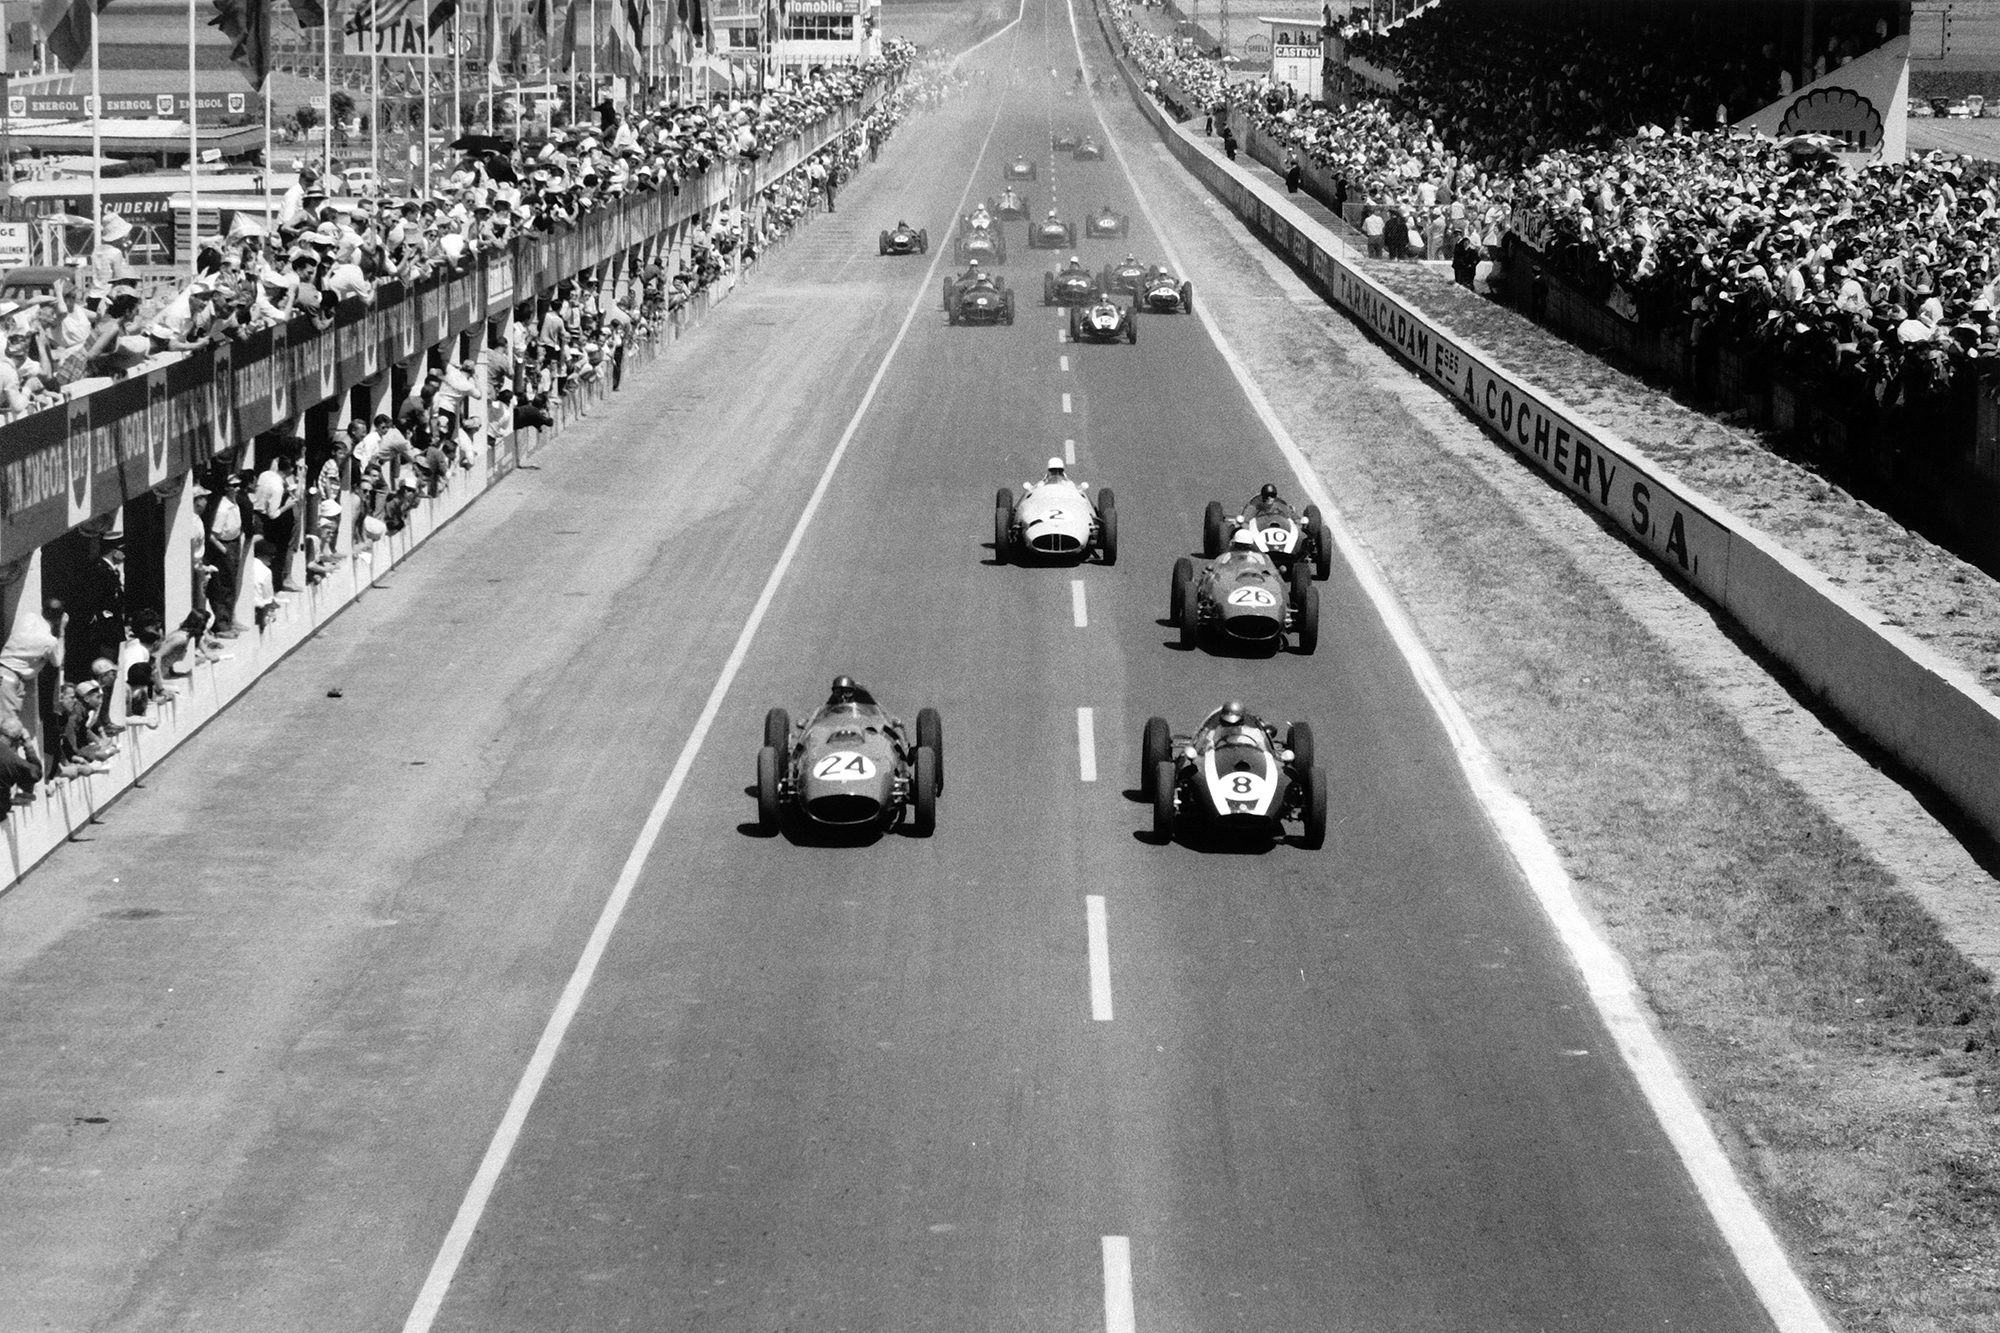 Tony Brooks, #24 Ferrari Dino 246 and Jack Brabham, Cooper T51-Climax, lead at the start.